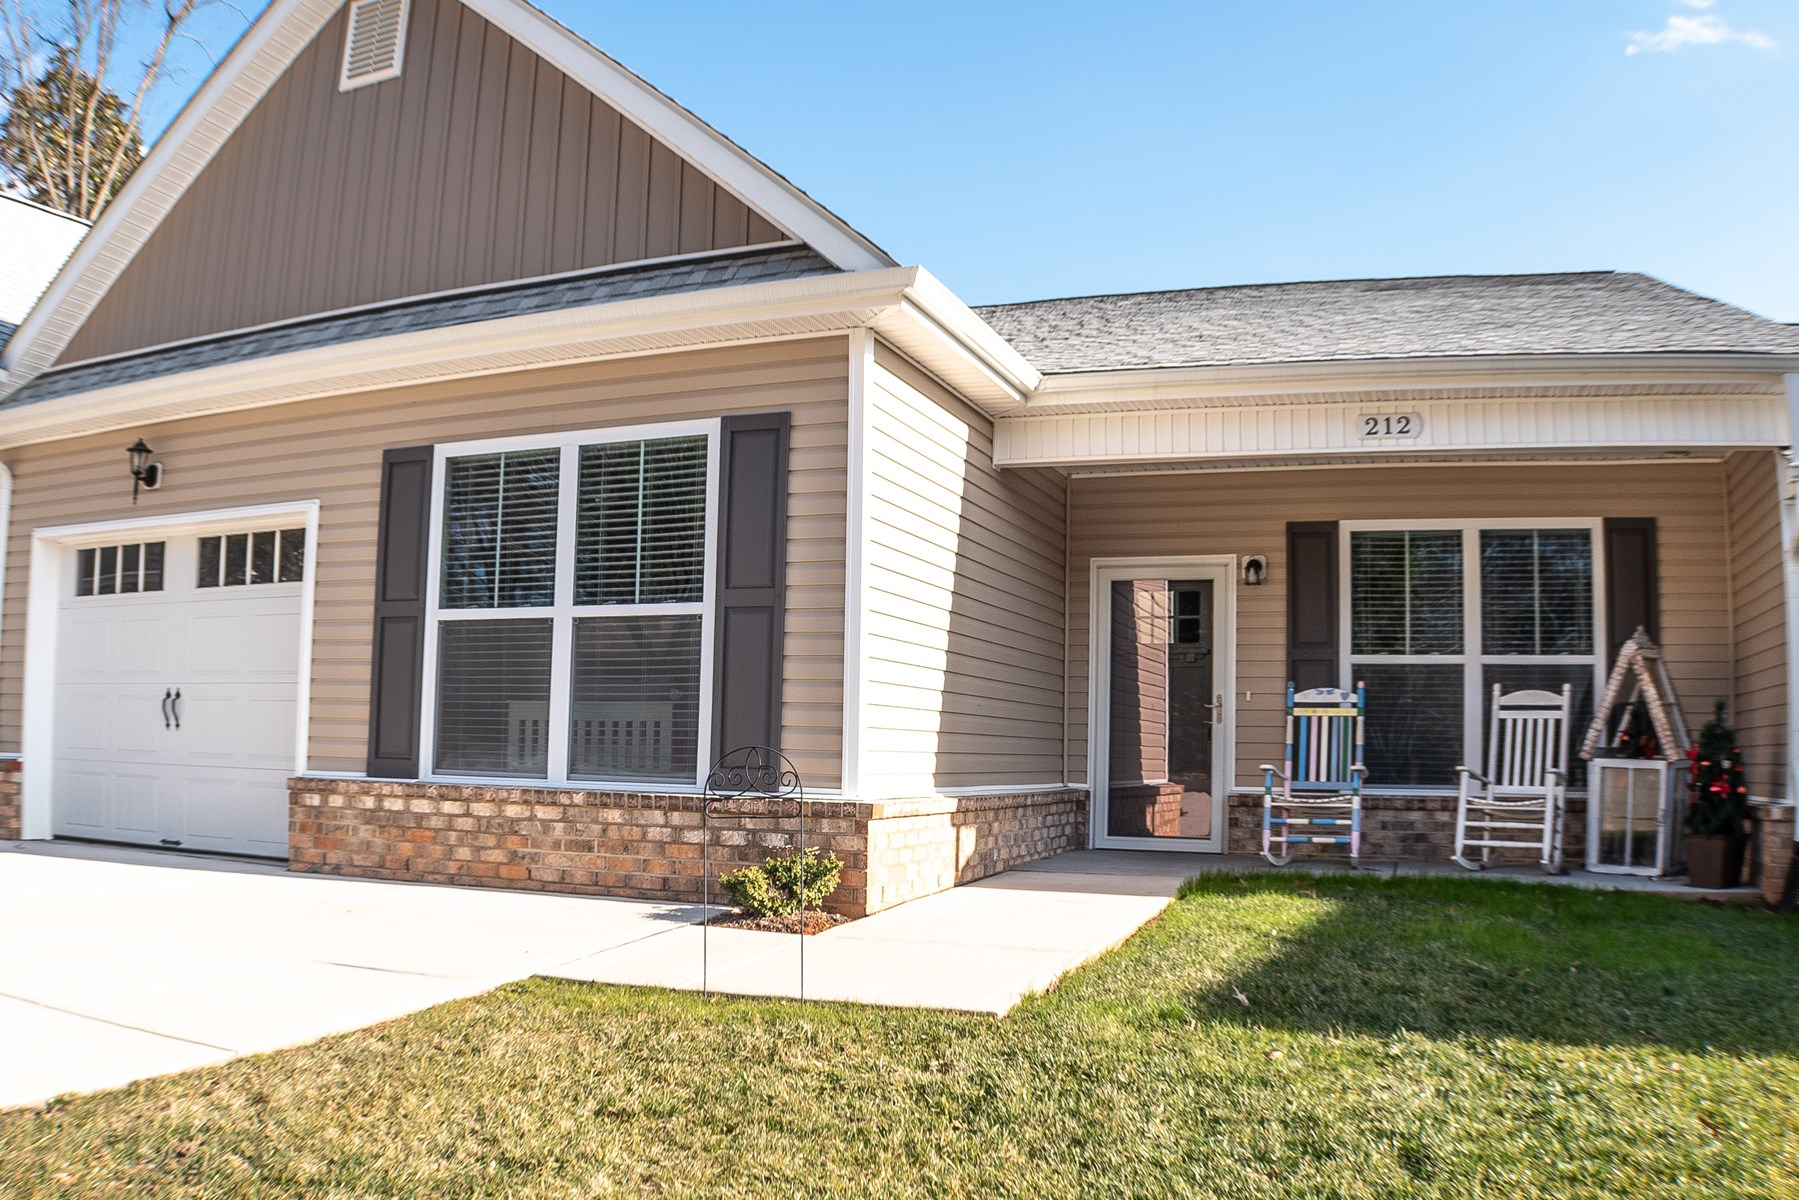 Town Home for sale in Pilot Mountain